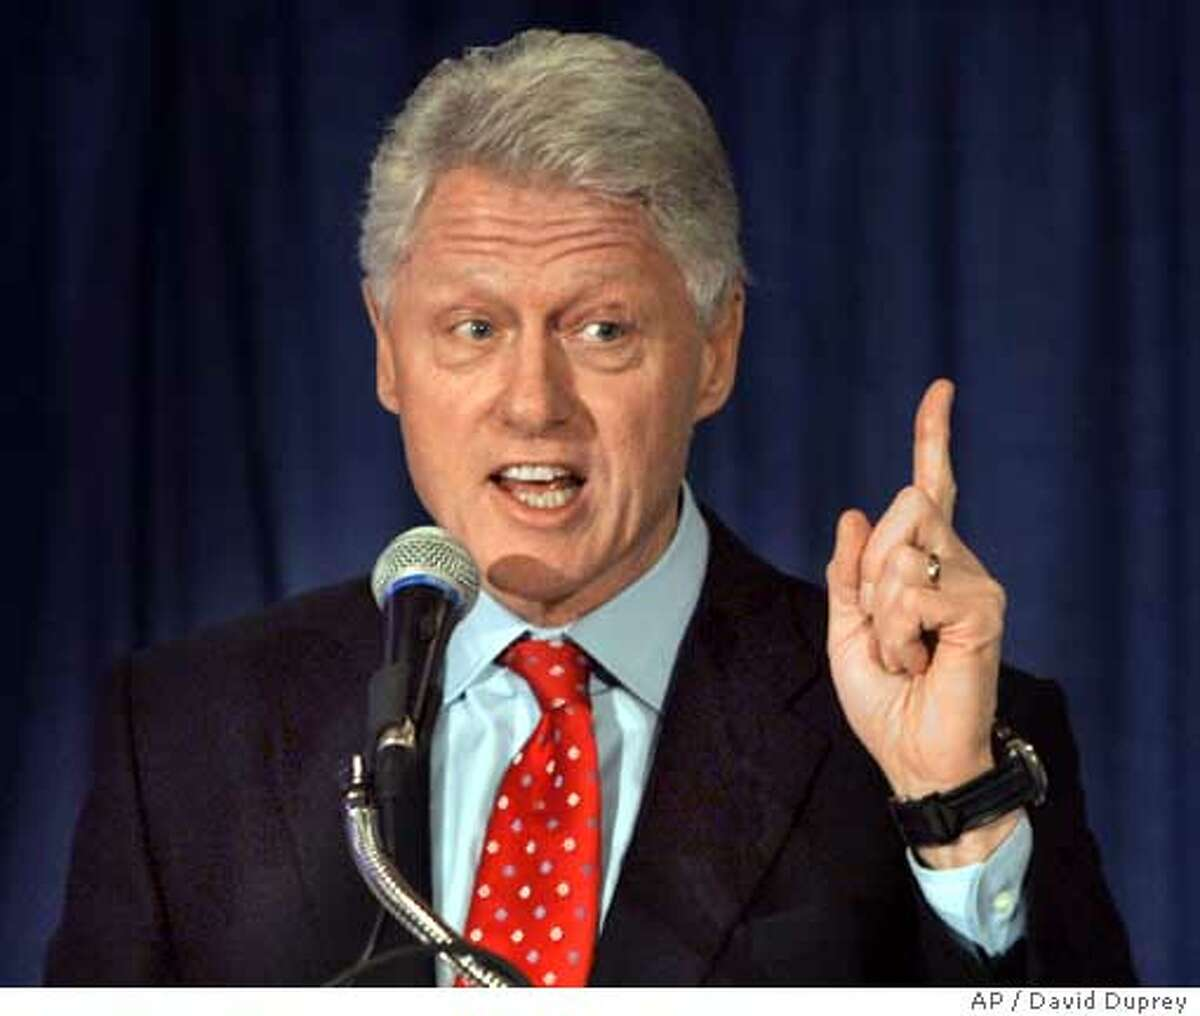 Former President Bill Clinton speaks to Erie County Democrats in Buffalo, N.Y., Wednesday, Dec. 14, 2005. Clinton is planning to attend a Buffalo Sabres hockey game with Sabres owner B. Thomas Golisano after the meeting with Democrats. (AP Photo/David Duprey) Ran on: 12-25-2005 Ronald Reagan and Bill Clinton both had an alcoholic parent, which William H. Chafe says can explain their personality traits. Ran on: 07-16-2006 When Paul Tagliabue was elected NFL commissioner in 1989, it took nearly four months after what was supposed to be the final selection meeting. He was picked over Jim Finks, then the Saints GM. Ran on: 08-02-2006 Jim Rogan